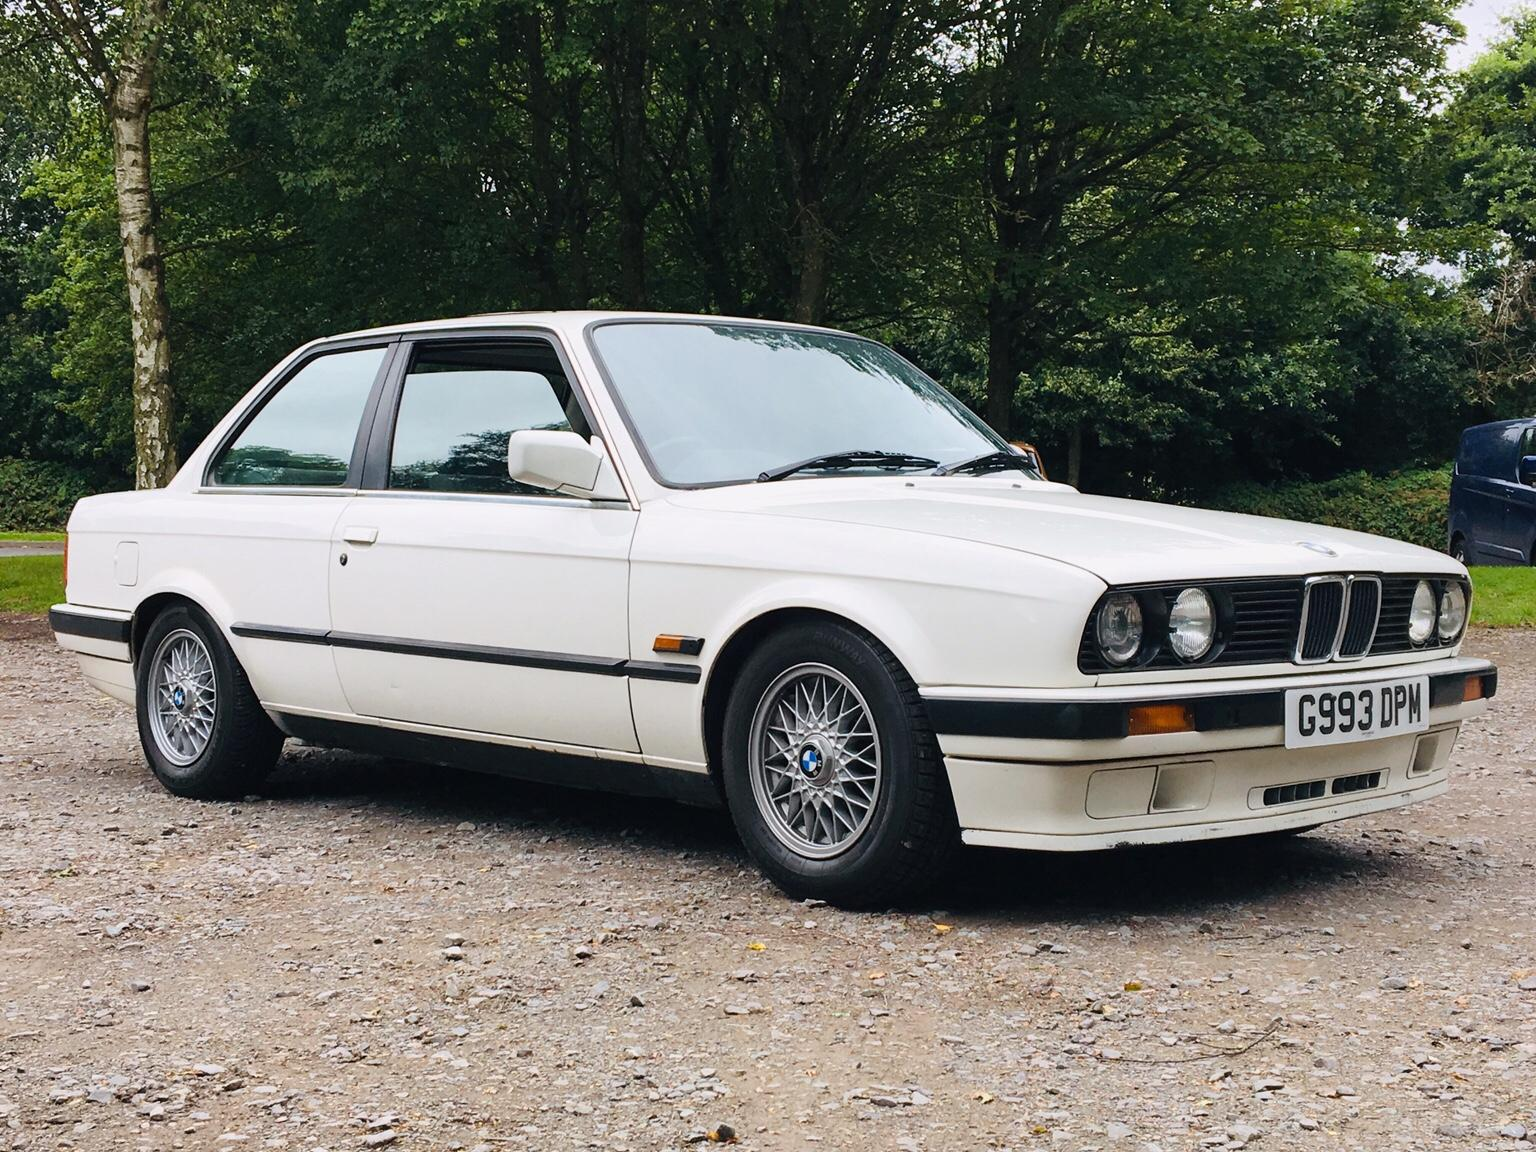 Bmw E30 14 4x100 Bbs Wheels And Tires Only In B32 Birmingham For 120 00 For Sale Shpock